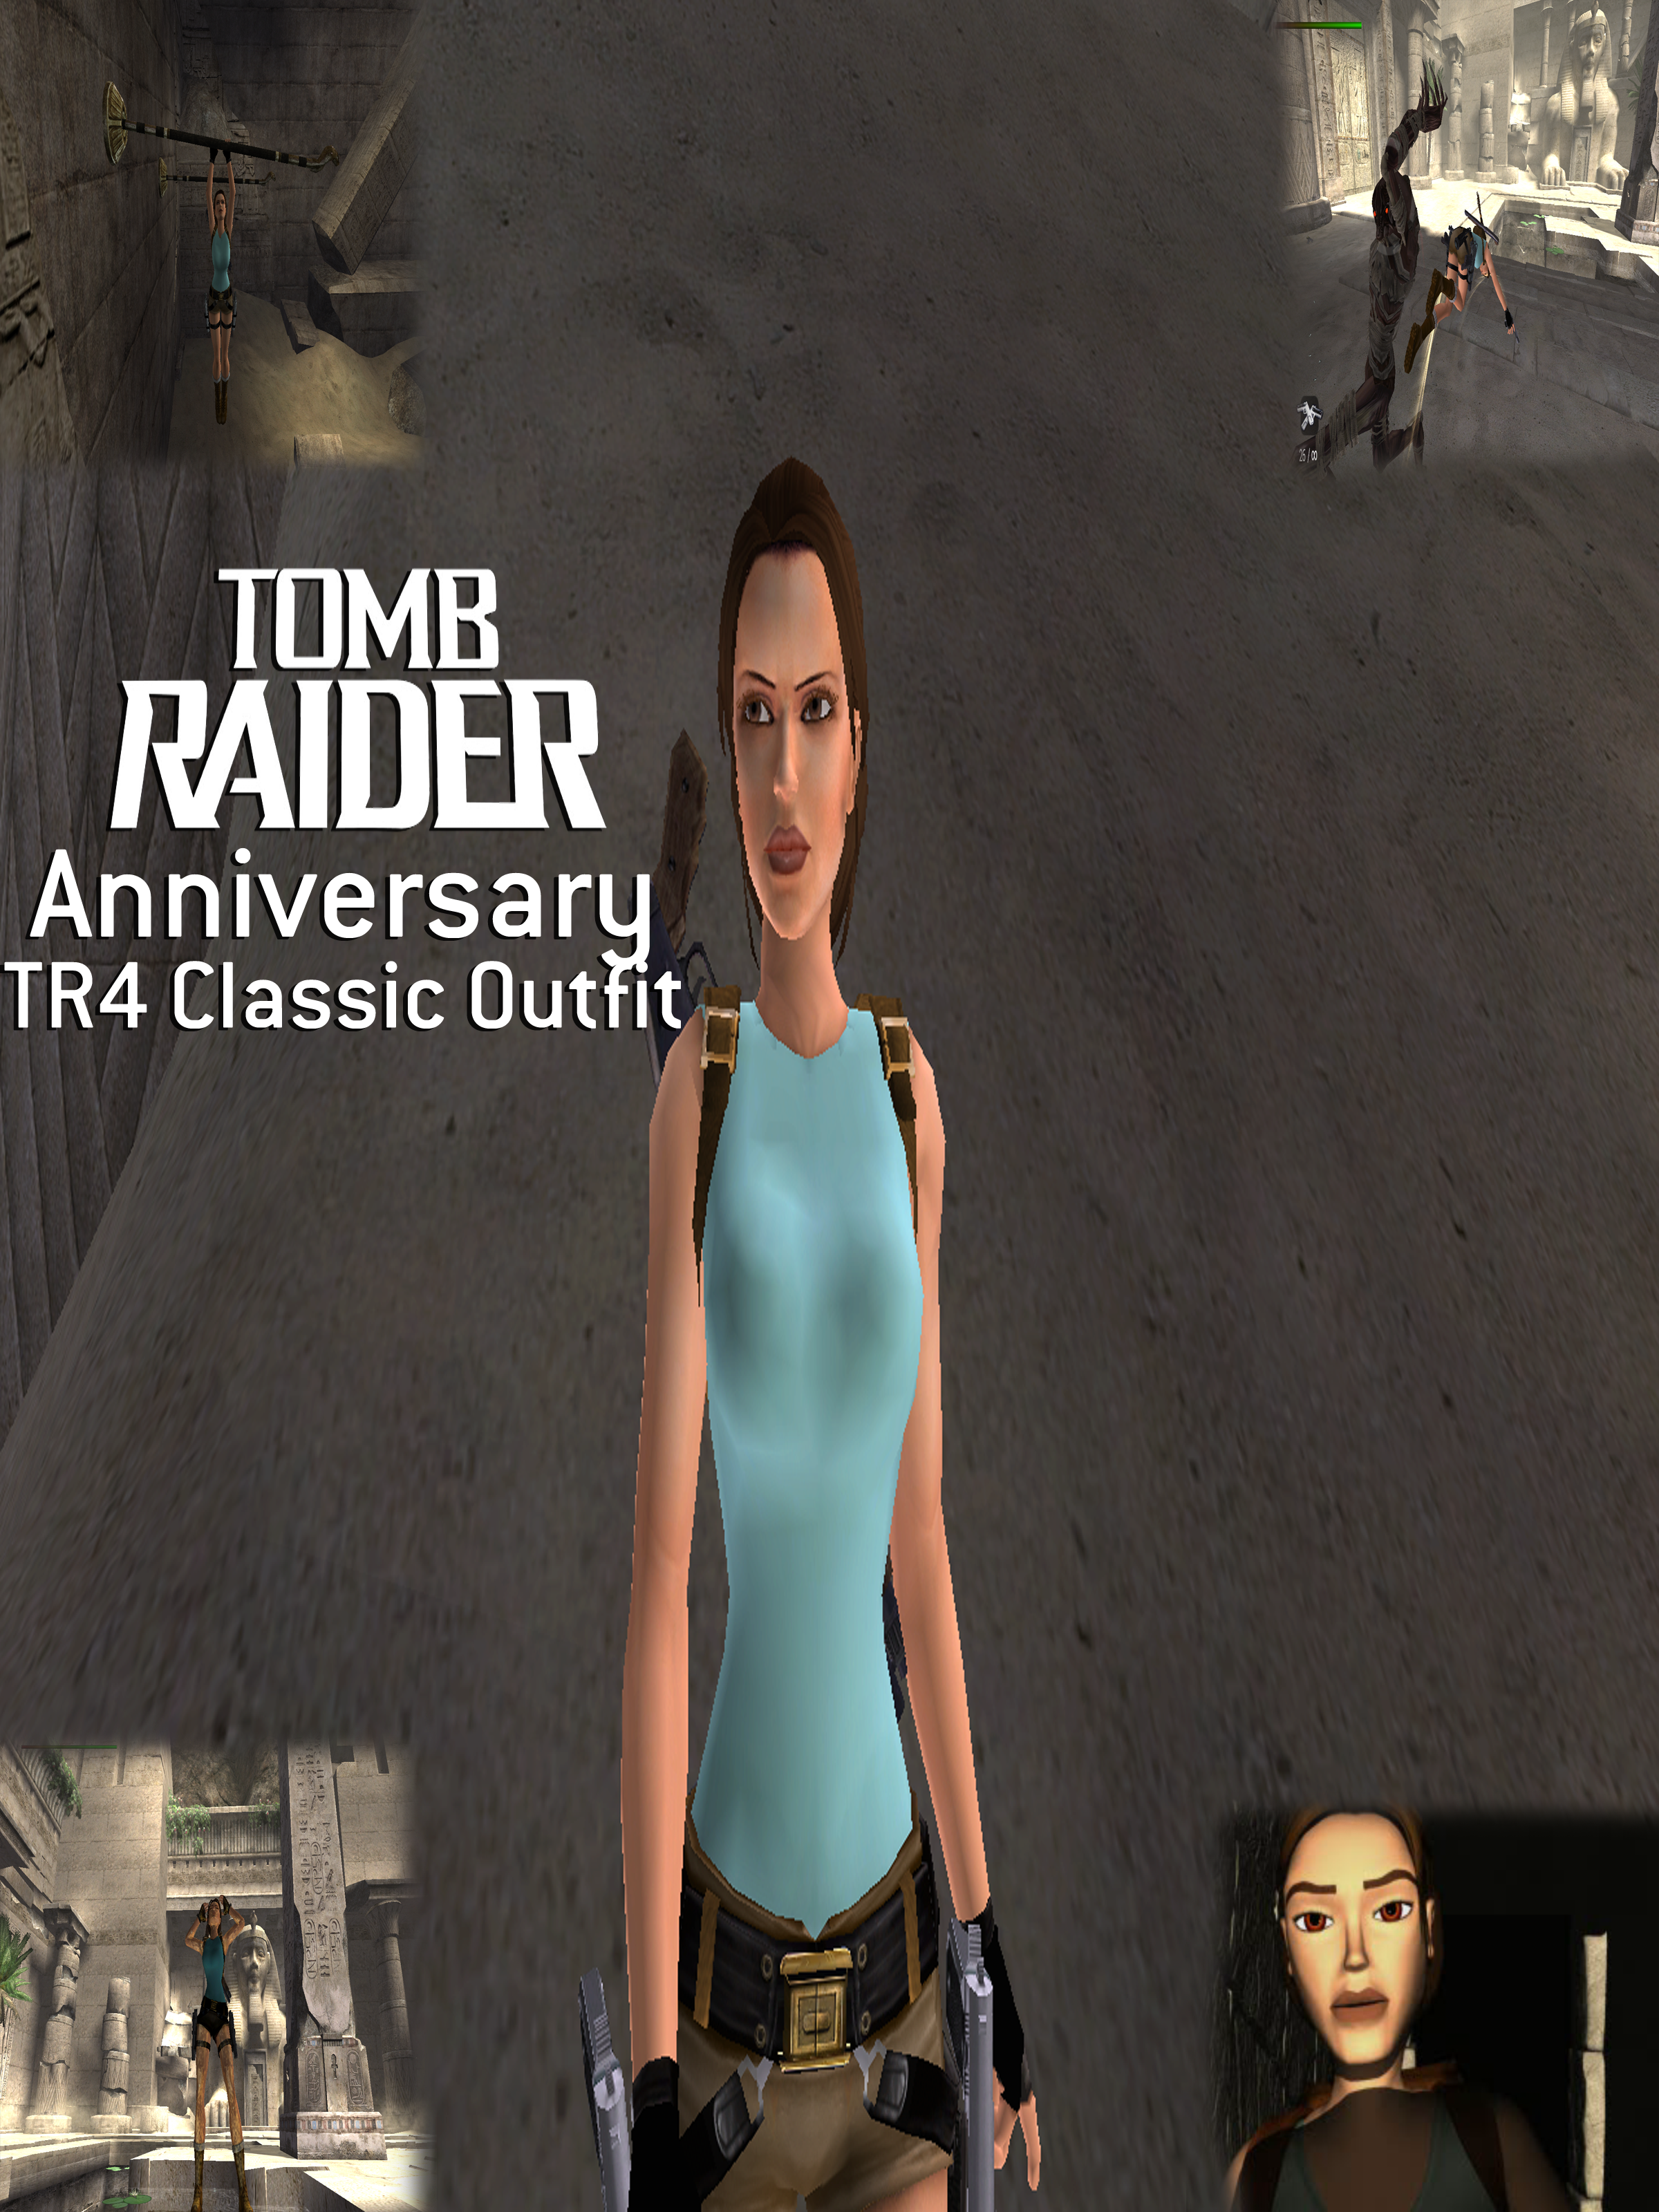 Tomb raider chronicles nude crack smut photo